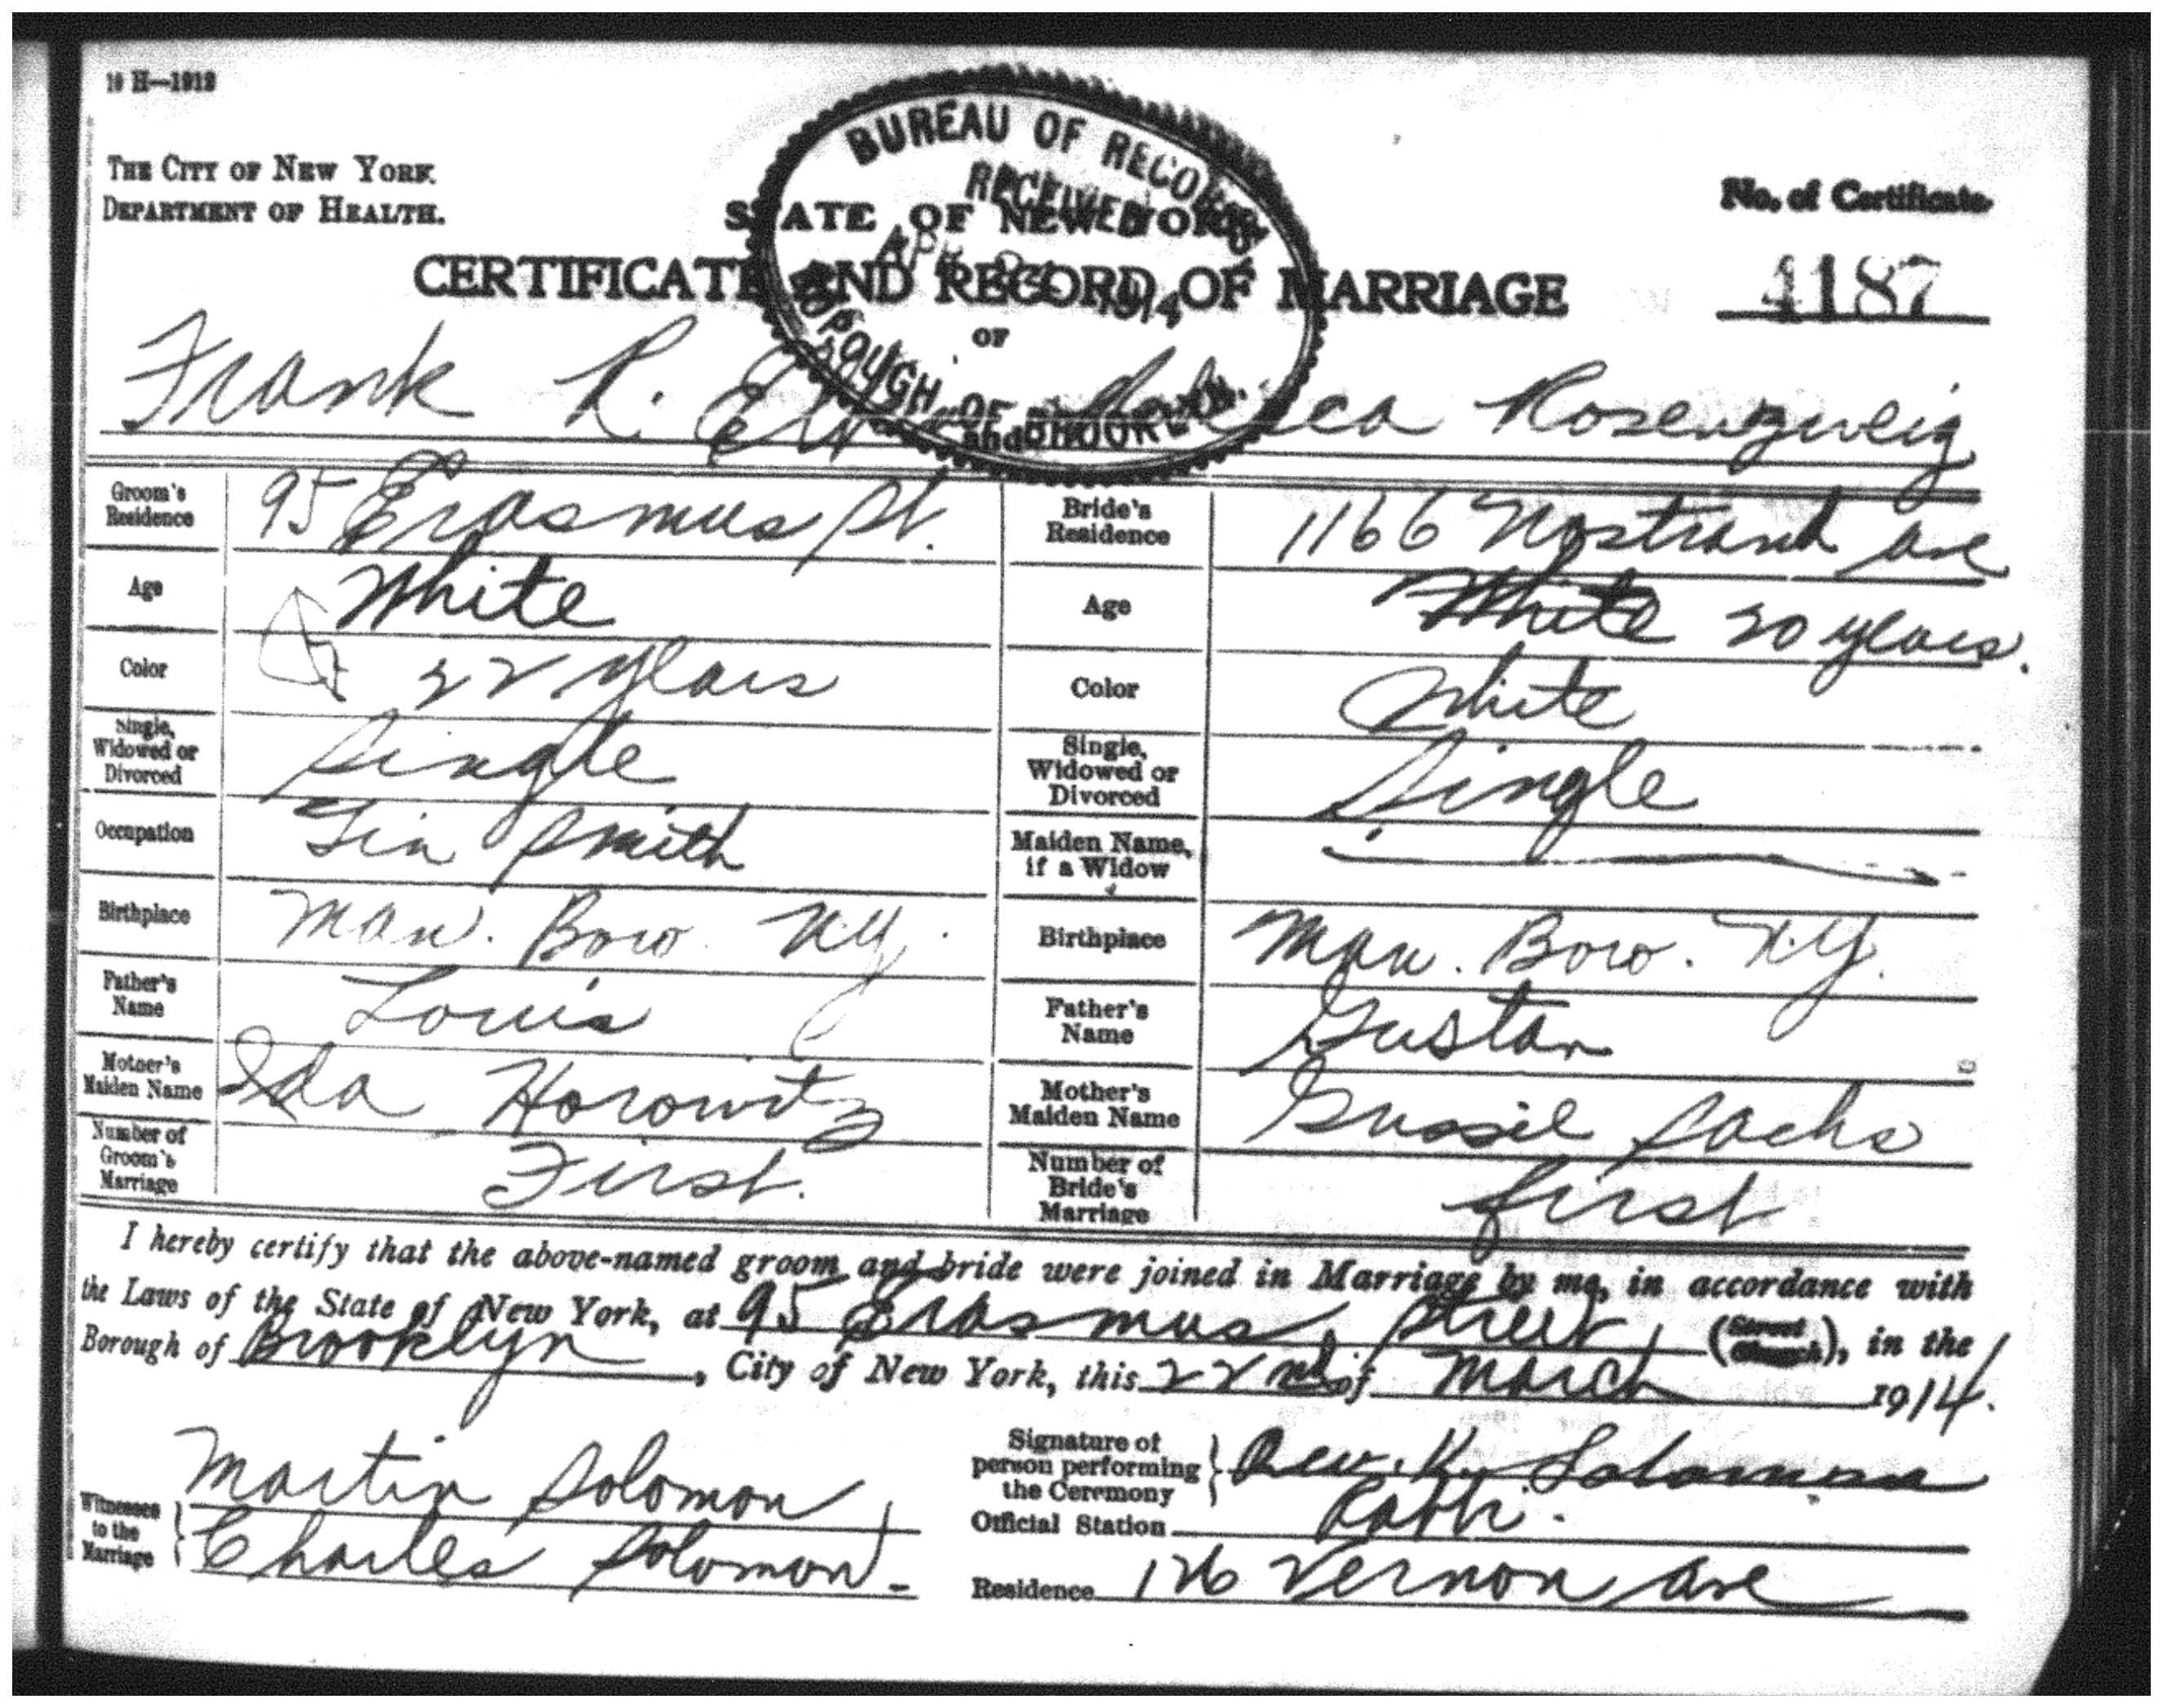 My grandfathers cousin rebecca another life cut short rebecca and frank elkin marriage certificate aiddatafo Images